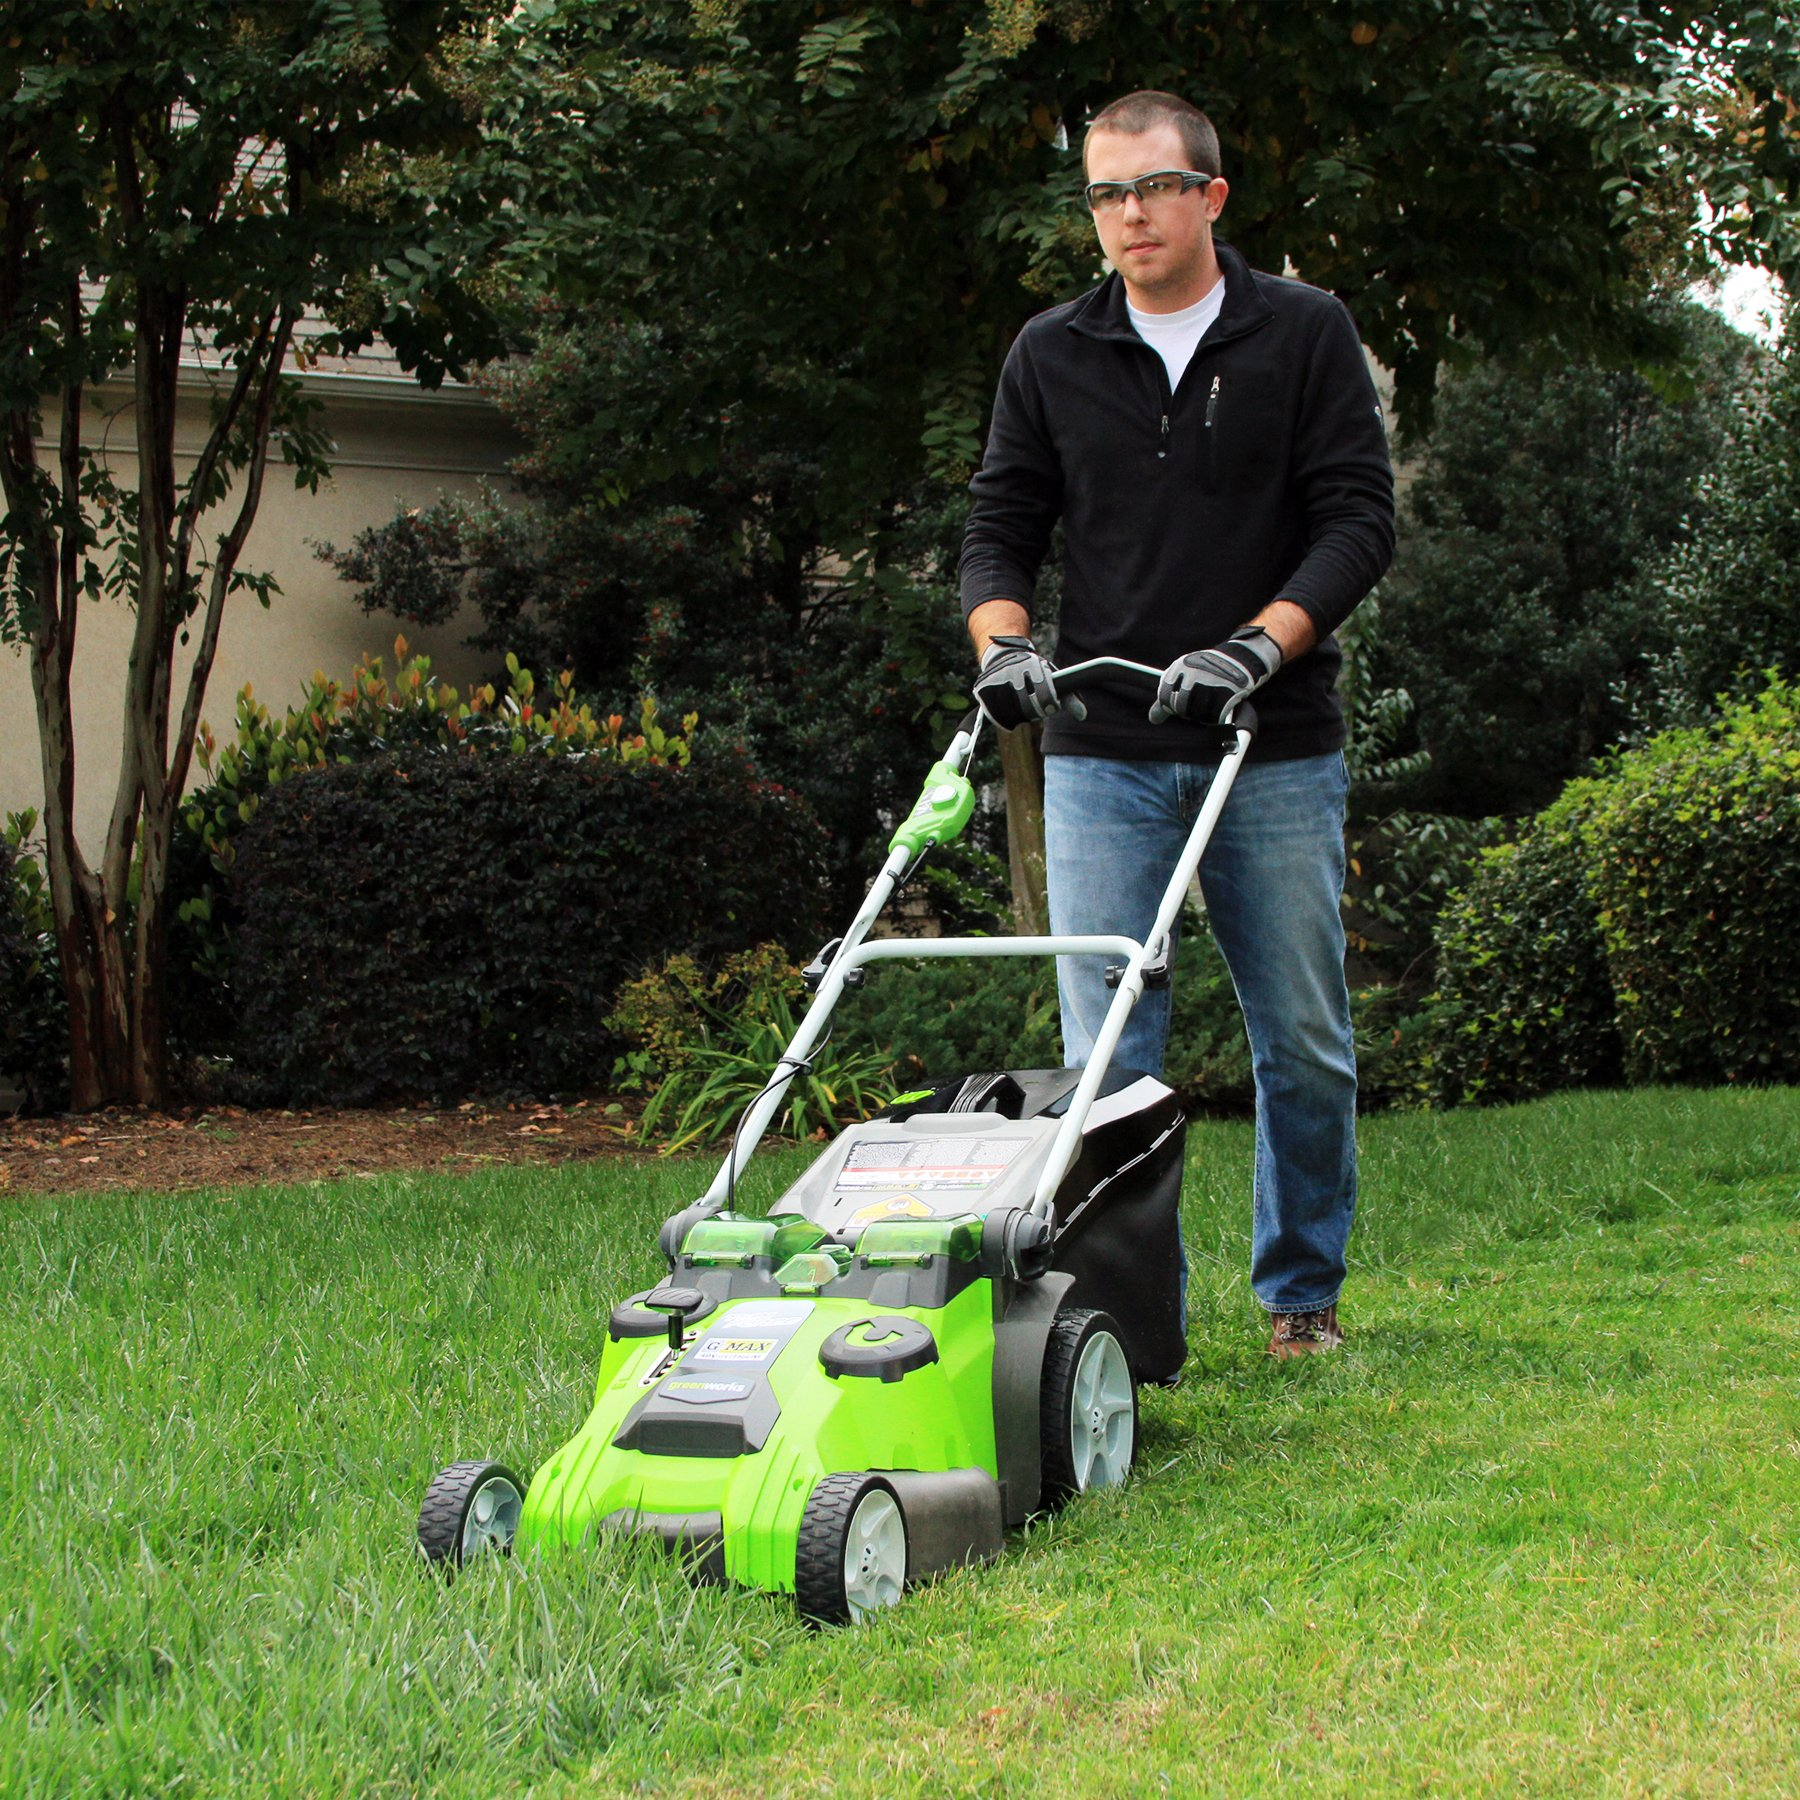 Greenworks 20-Inch 40V Twin Force Cordless Lawn Mower, 4.0 AH & 2.0 AH Batteries Included 25302 by Greenworks (Image #11)